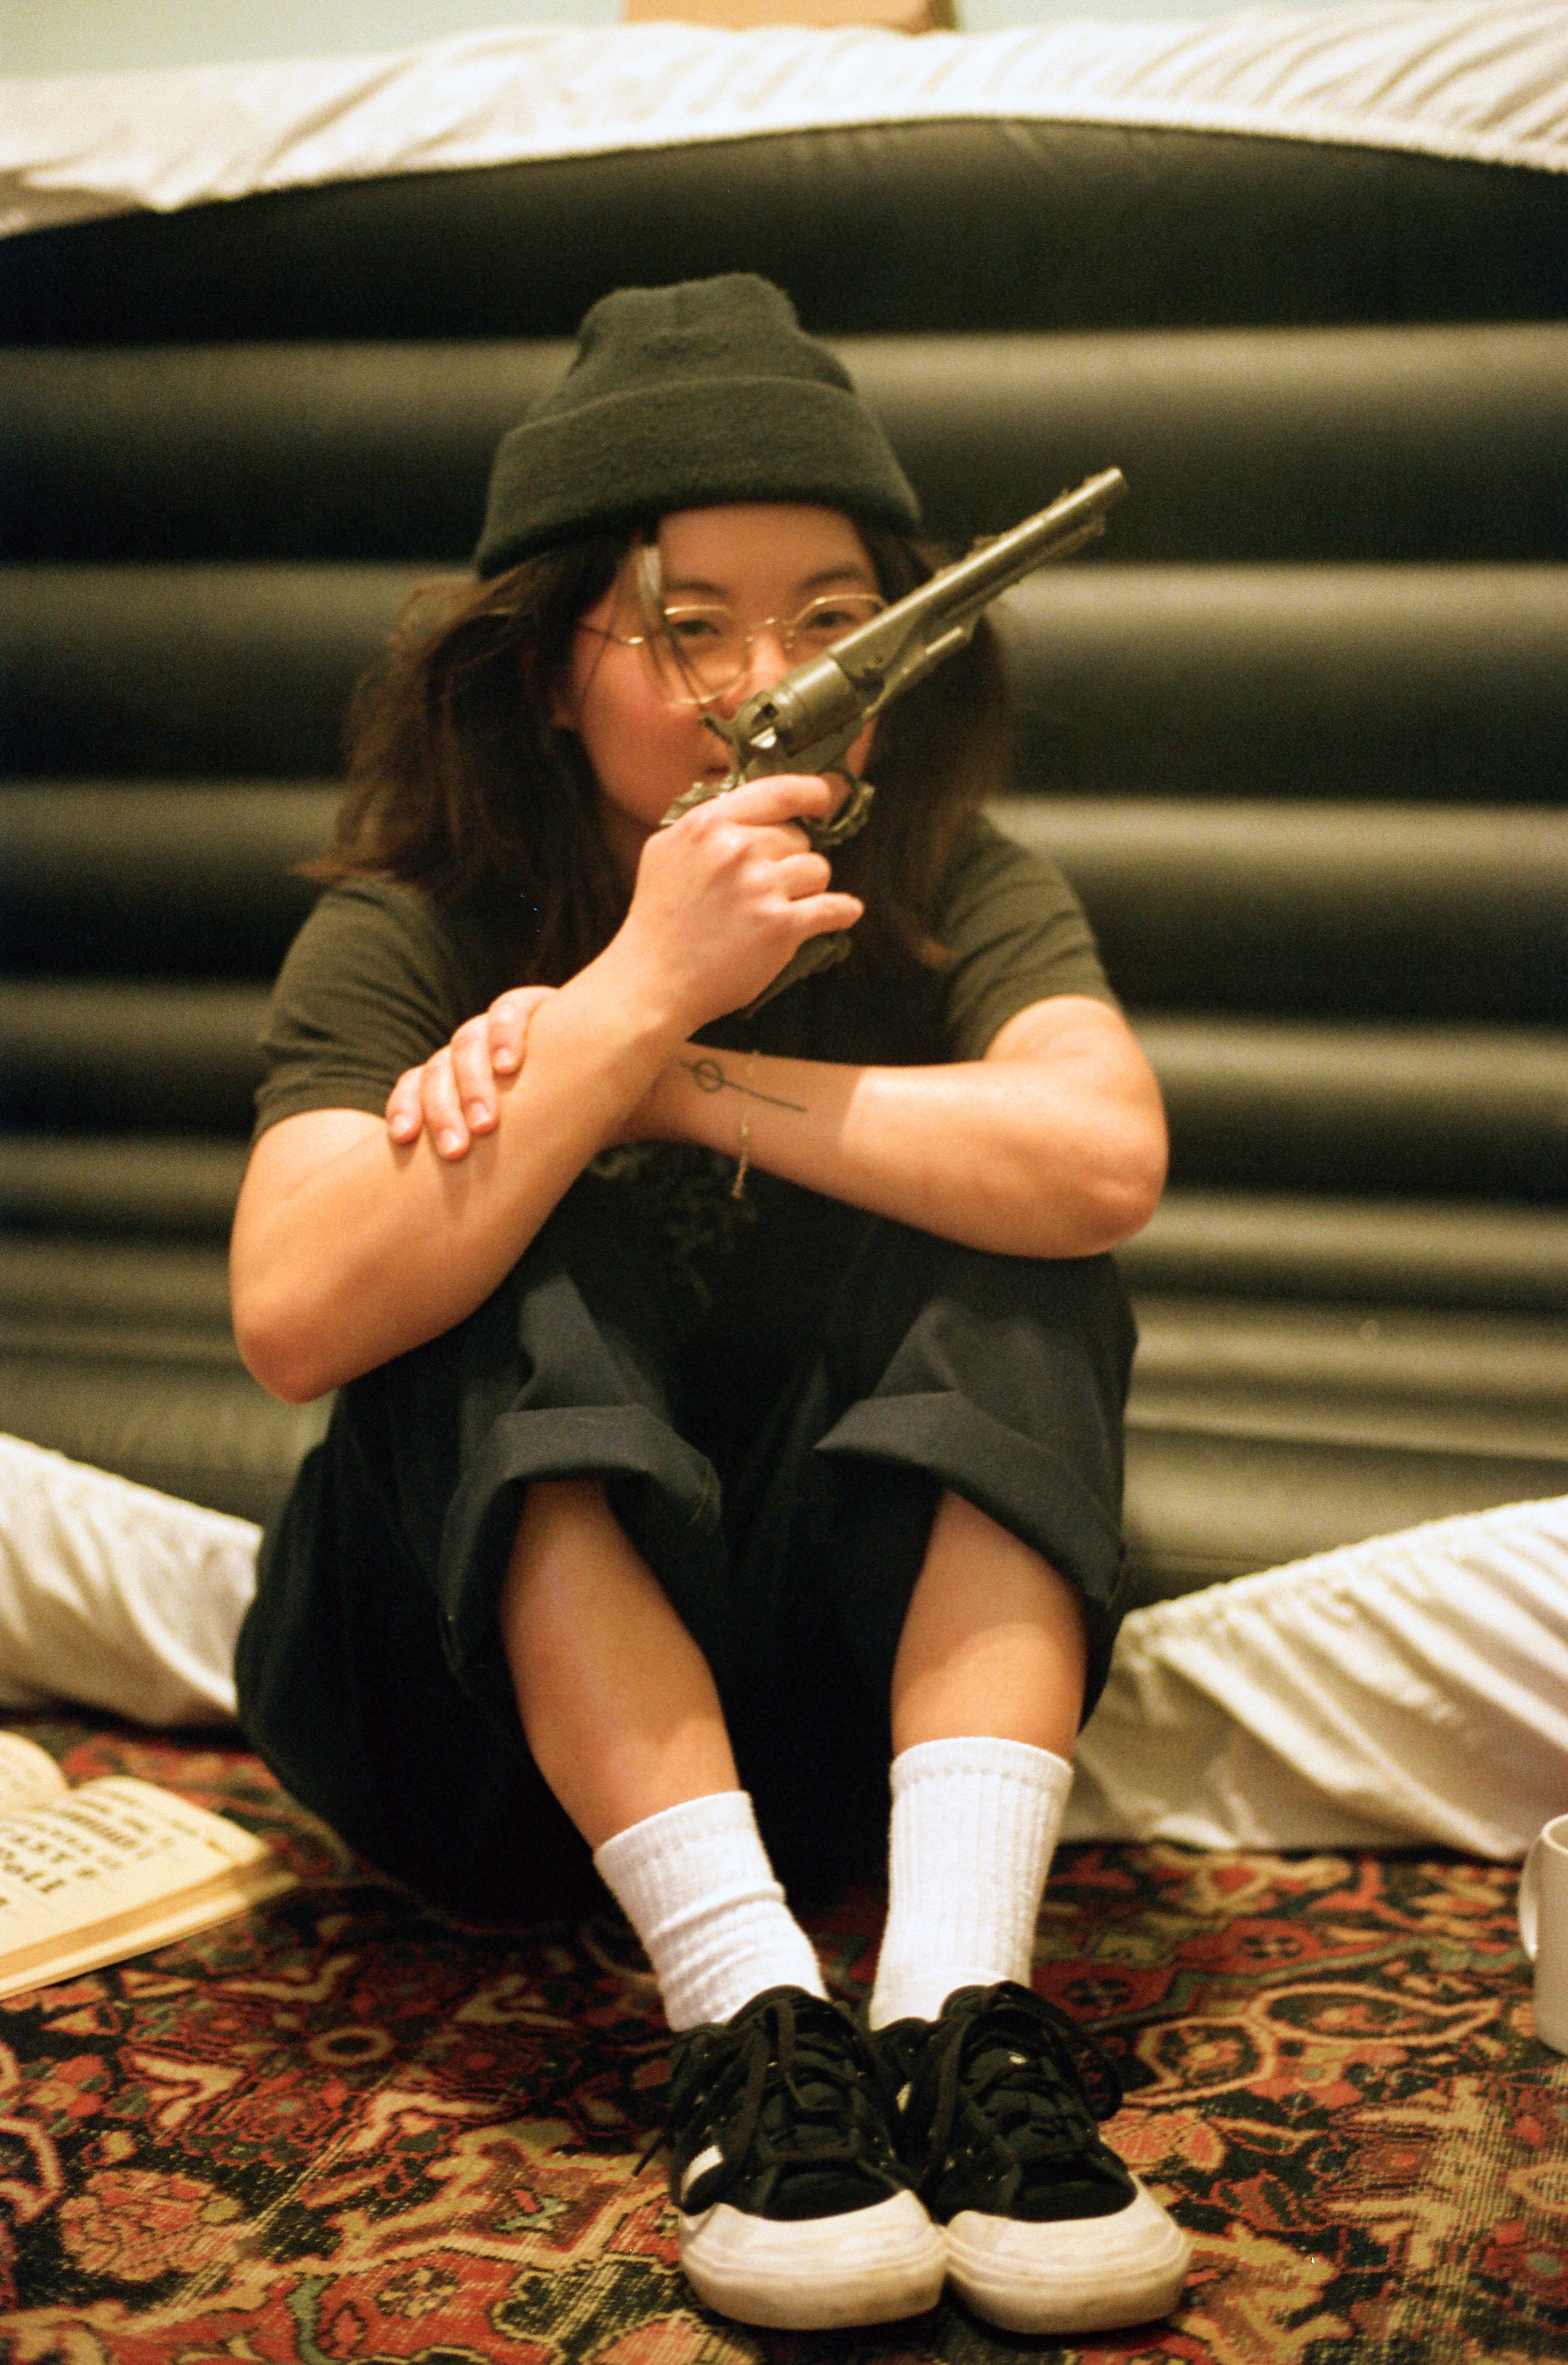 film portrait photograph of woman holding fake gun in front of upright air mattress